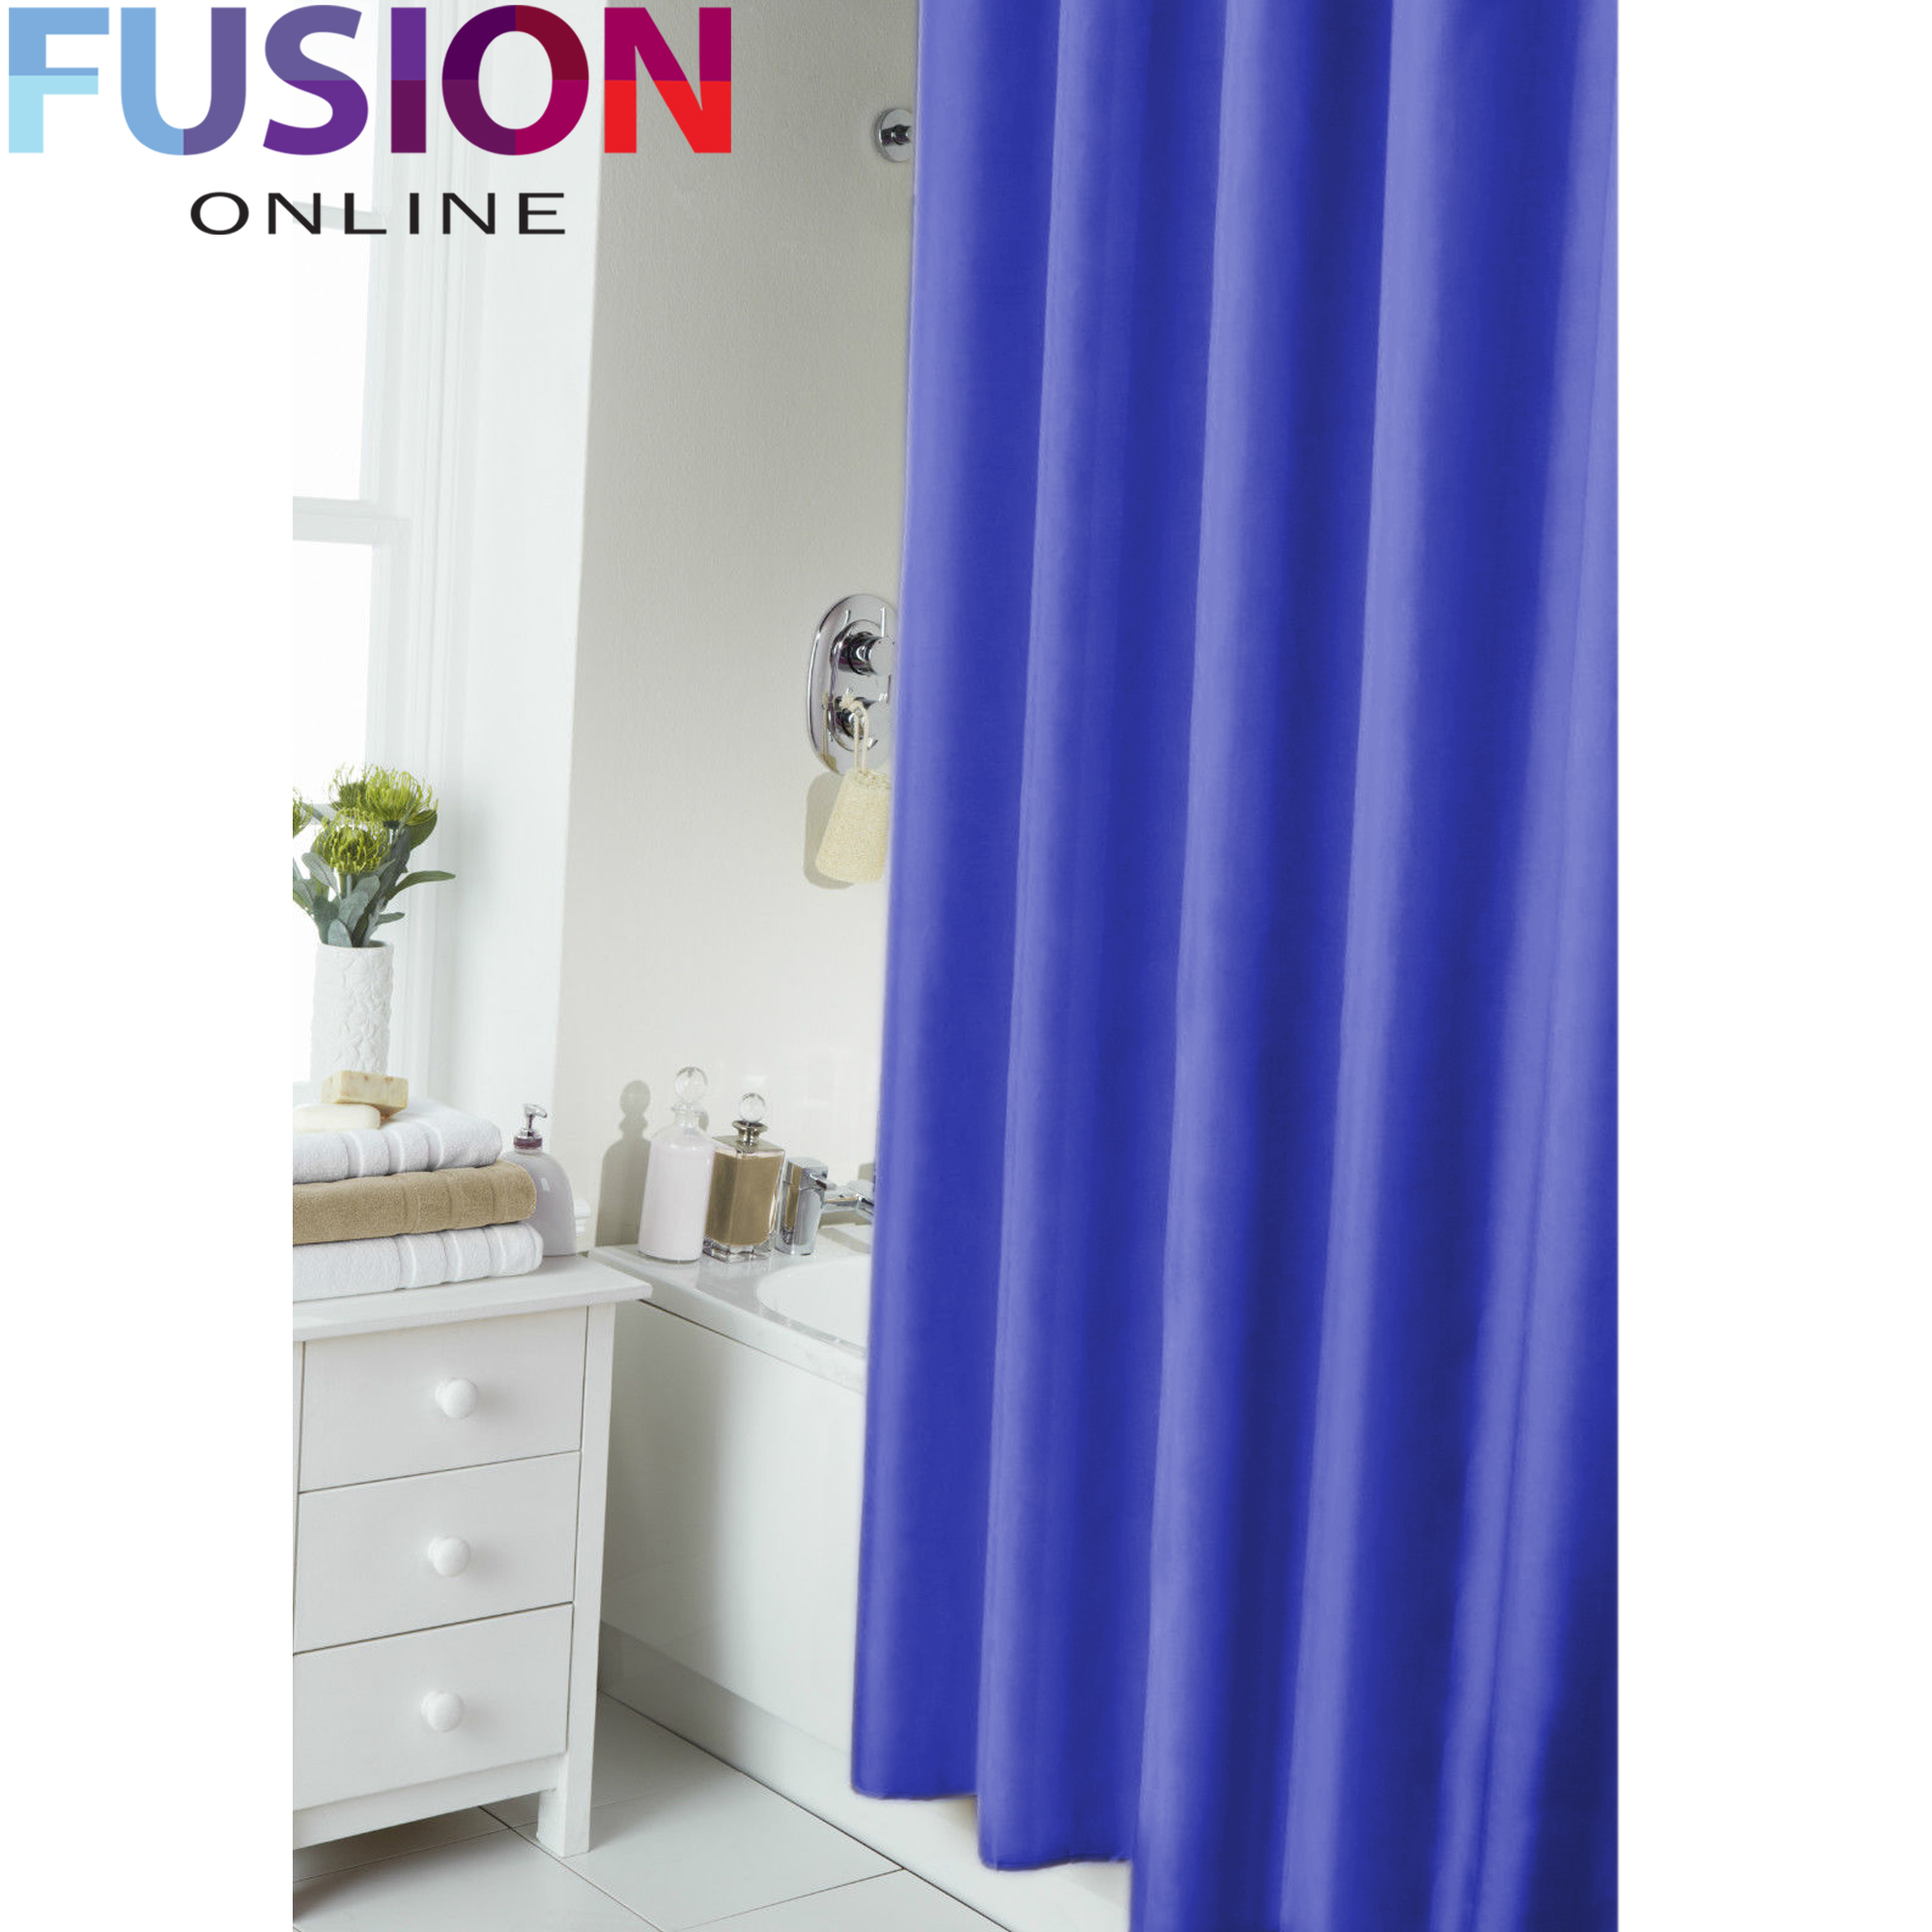 PLAIN-SHOWER-BATHROOM-CURTAIN-12-HOOK-RING-SET-180X180CM-MILDEW-SPLASH-RESISTANT